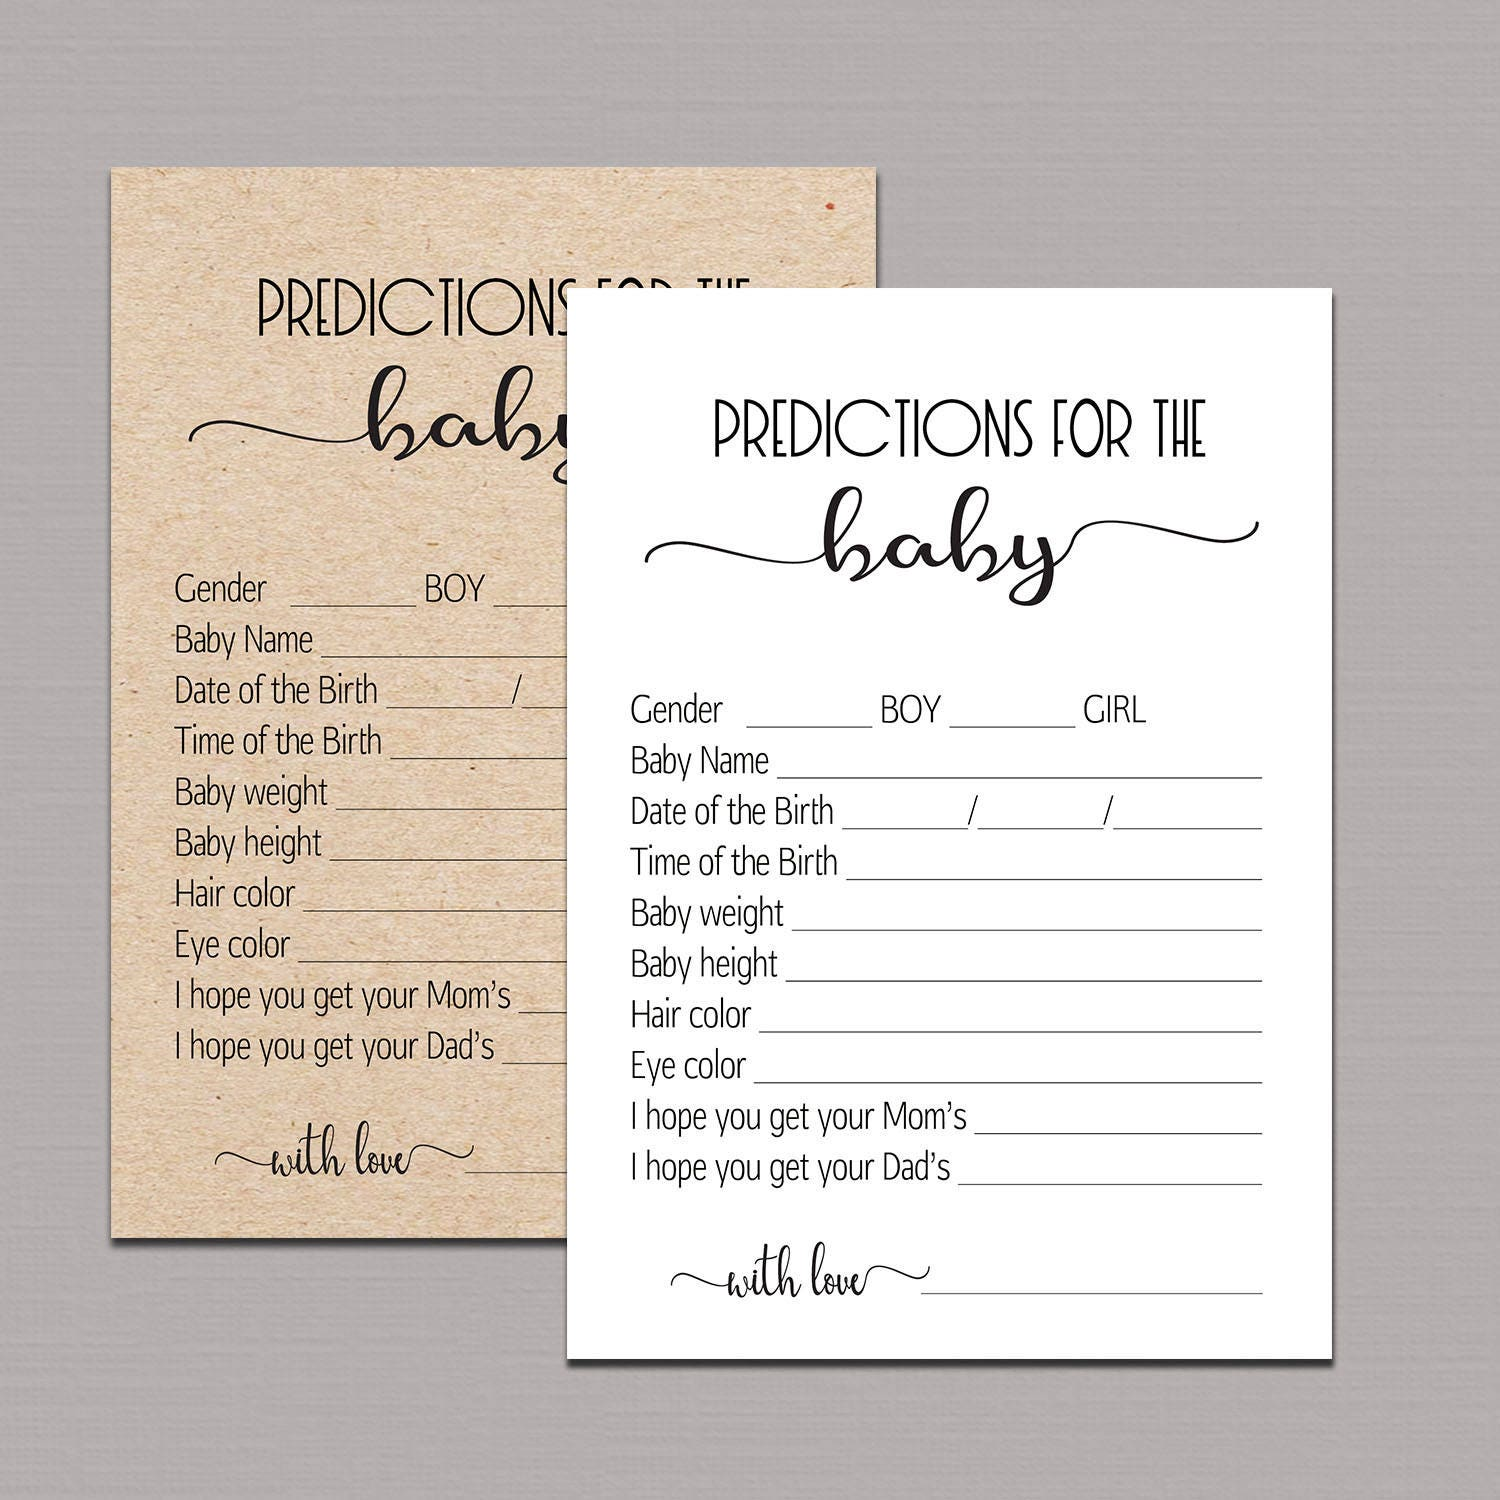 This is an image of Ambitious Baby Prediction Cards Free Printable